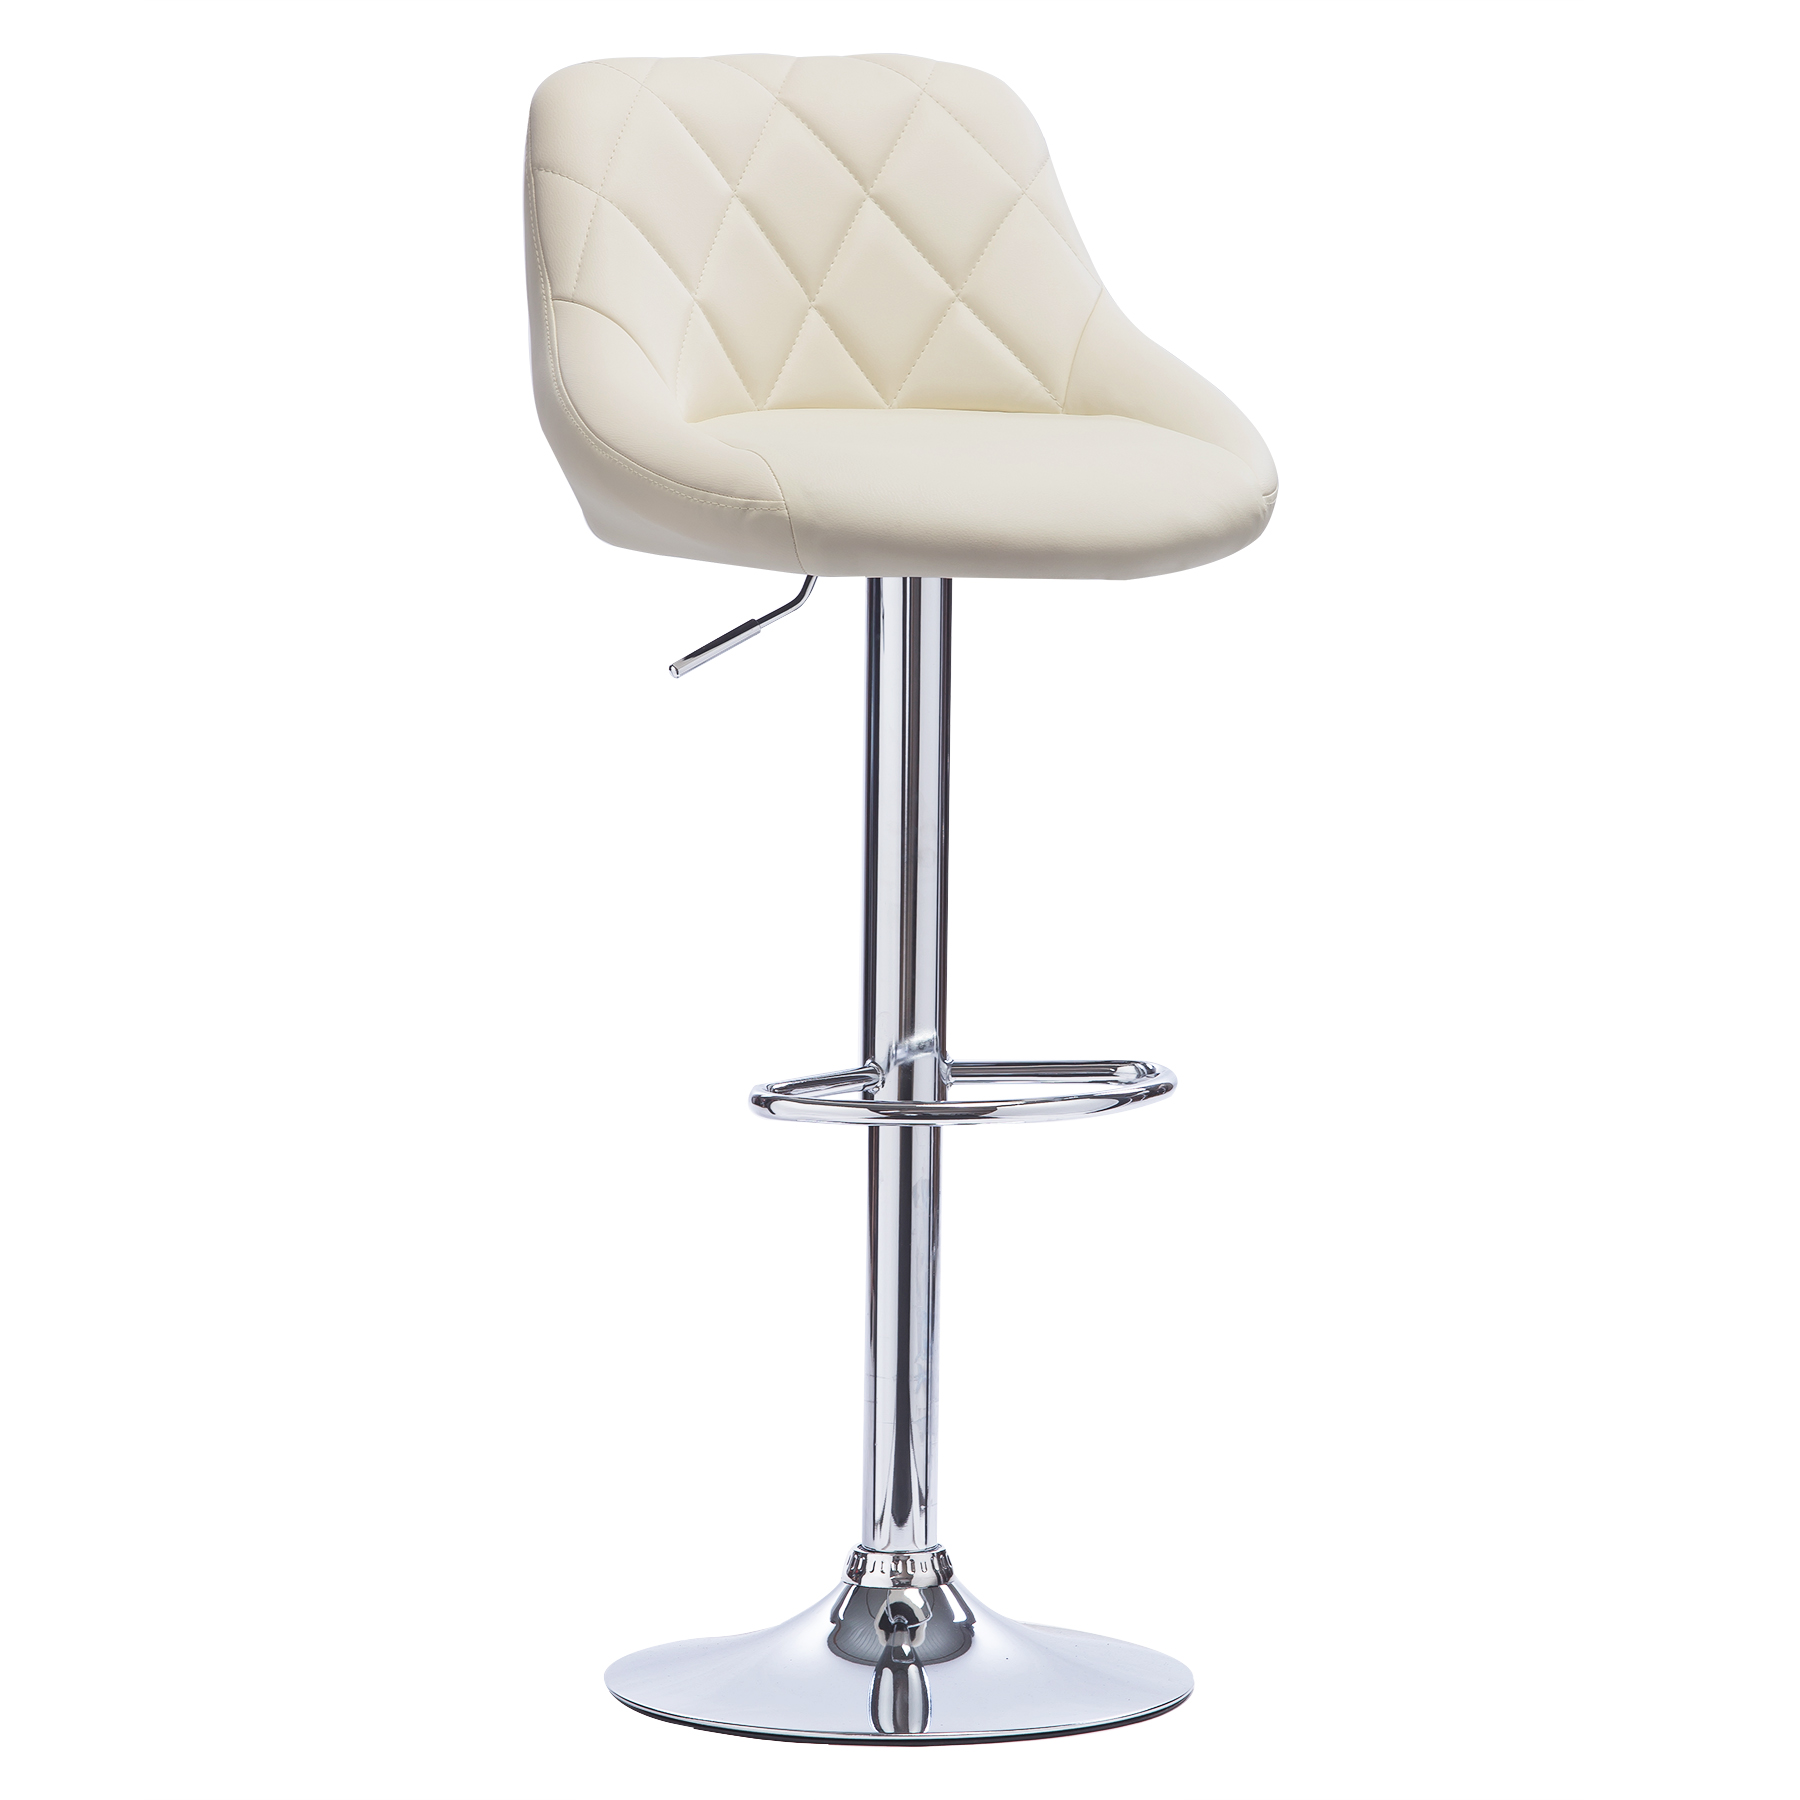 1 tabouret de bar pivotant en cuir synth tique chaise - Chaise bar reglable ...